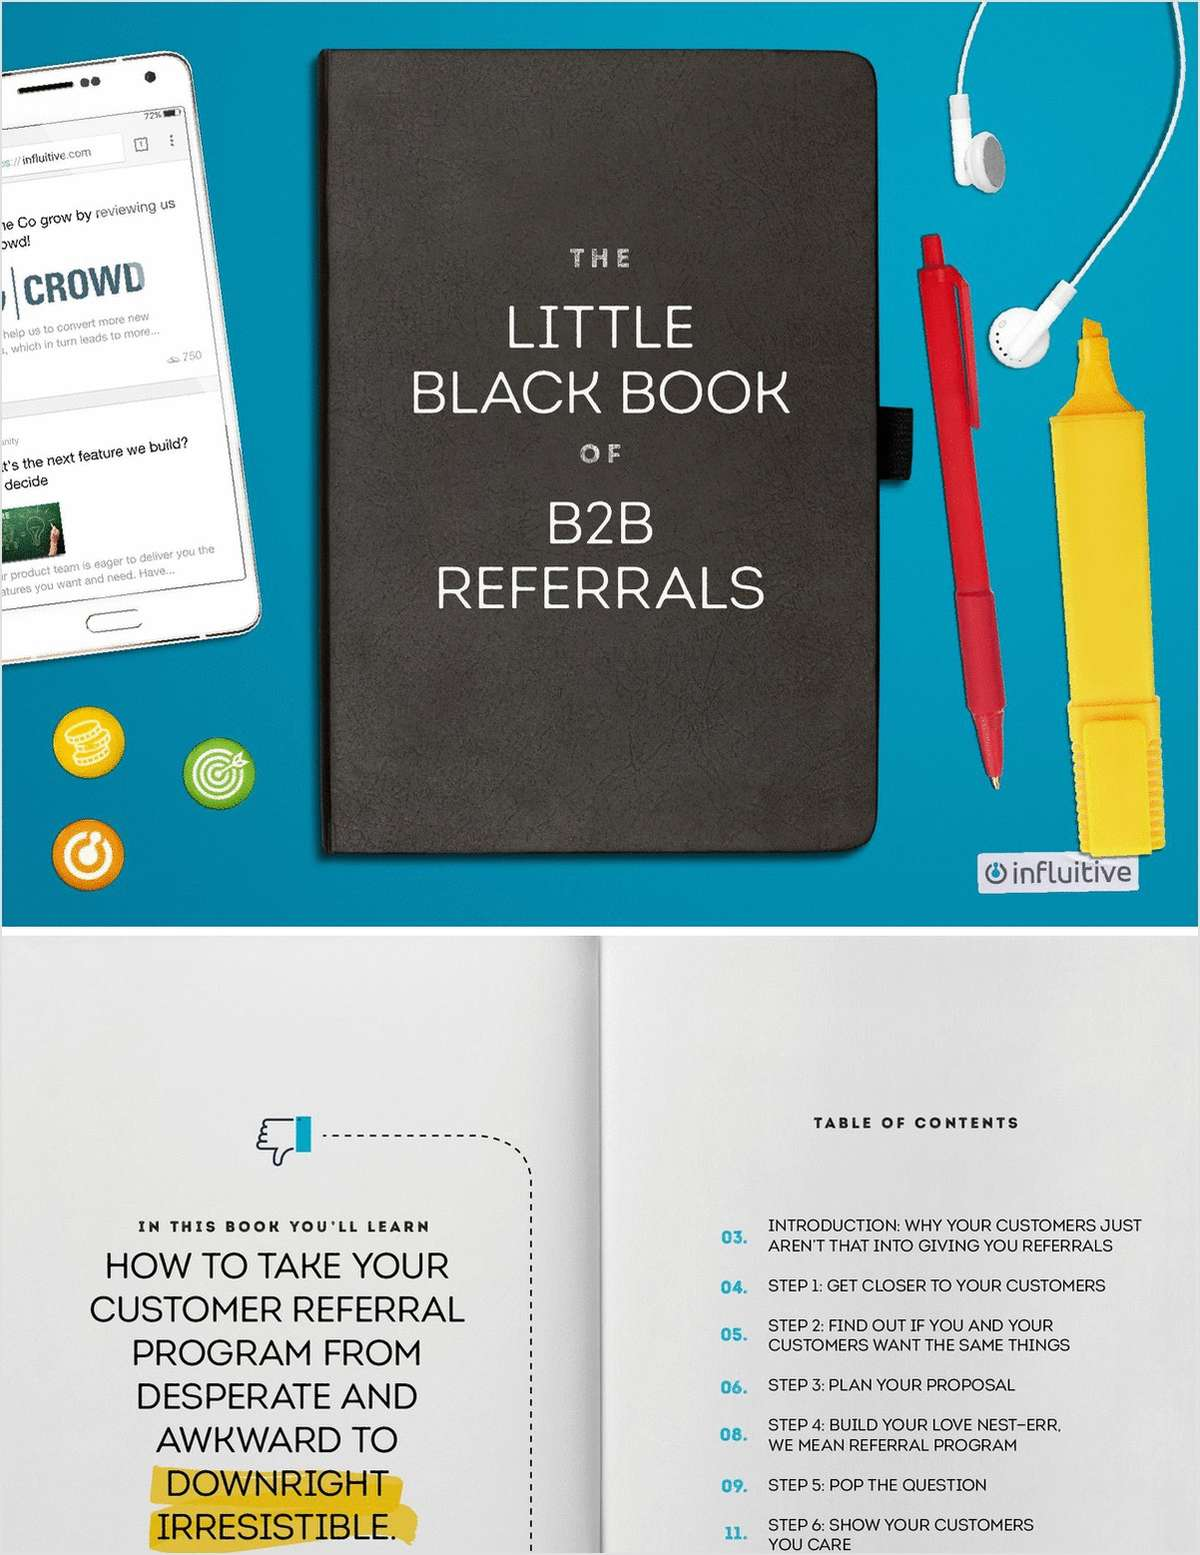 The Little Black Book of B2B Referrals